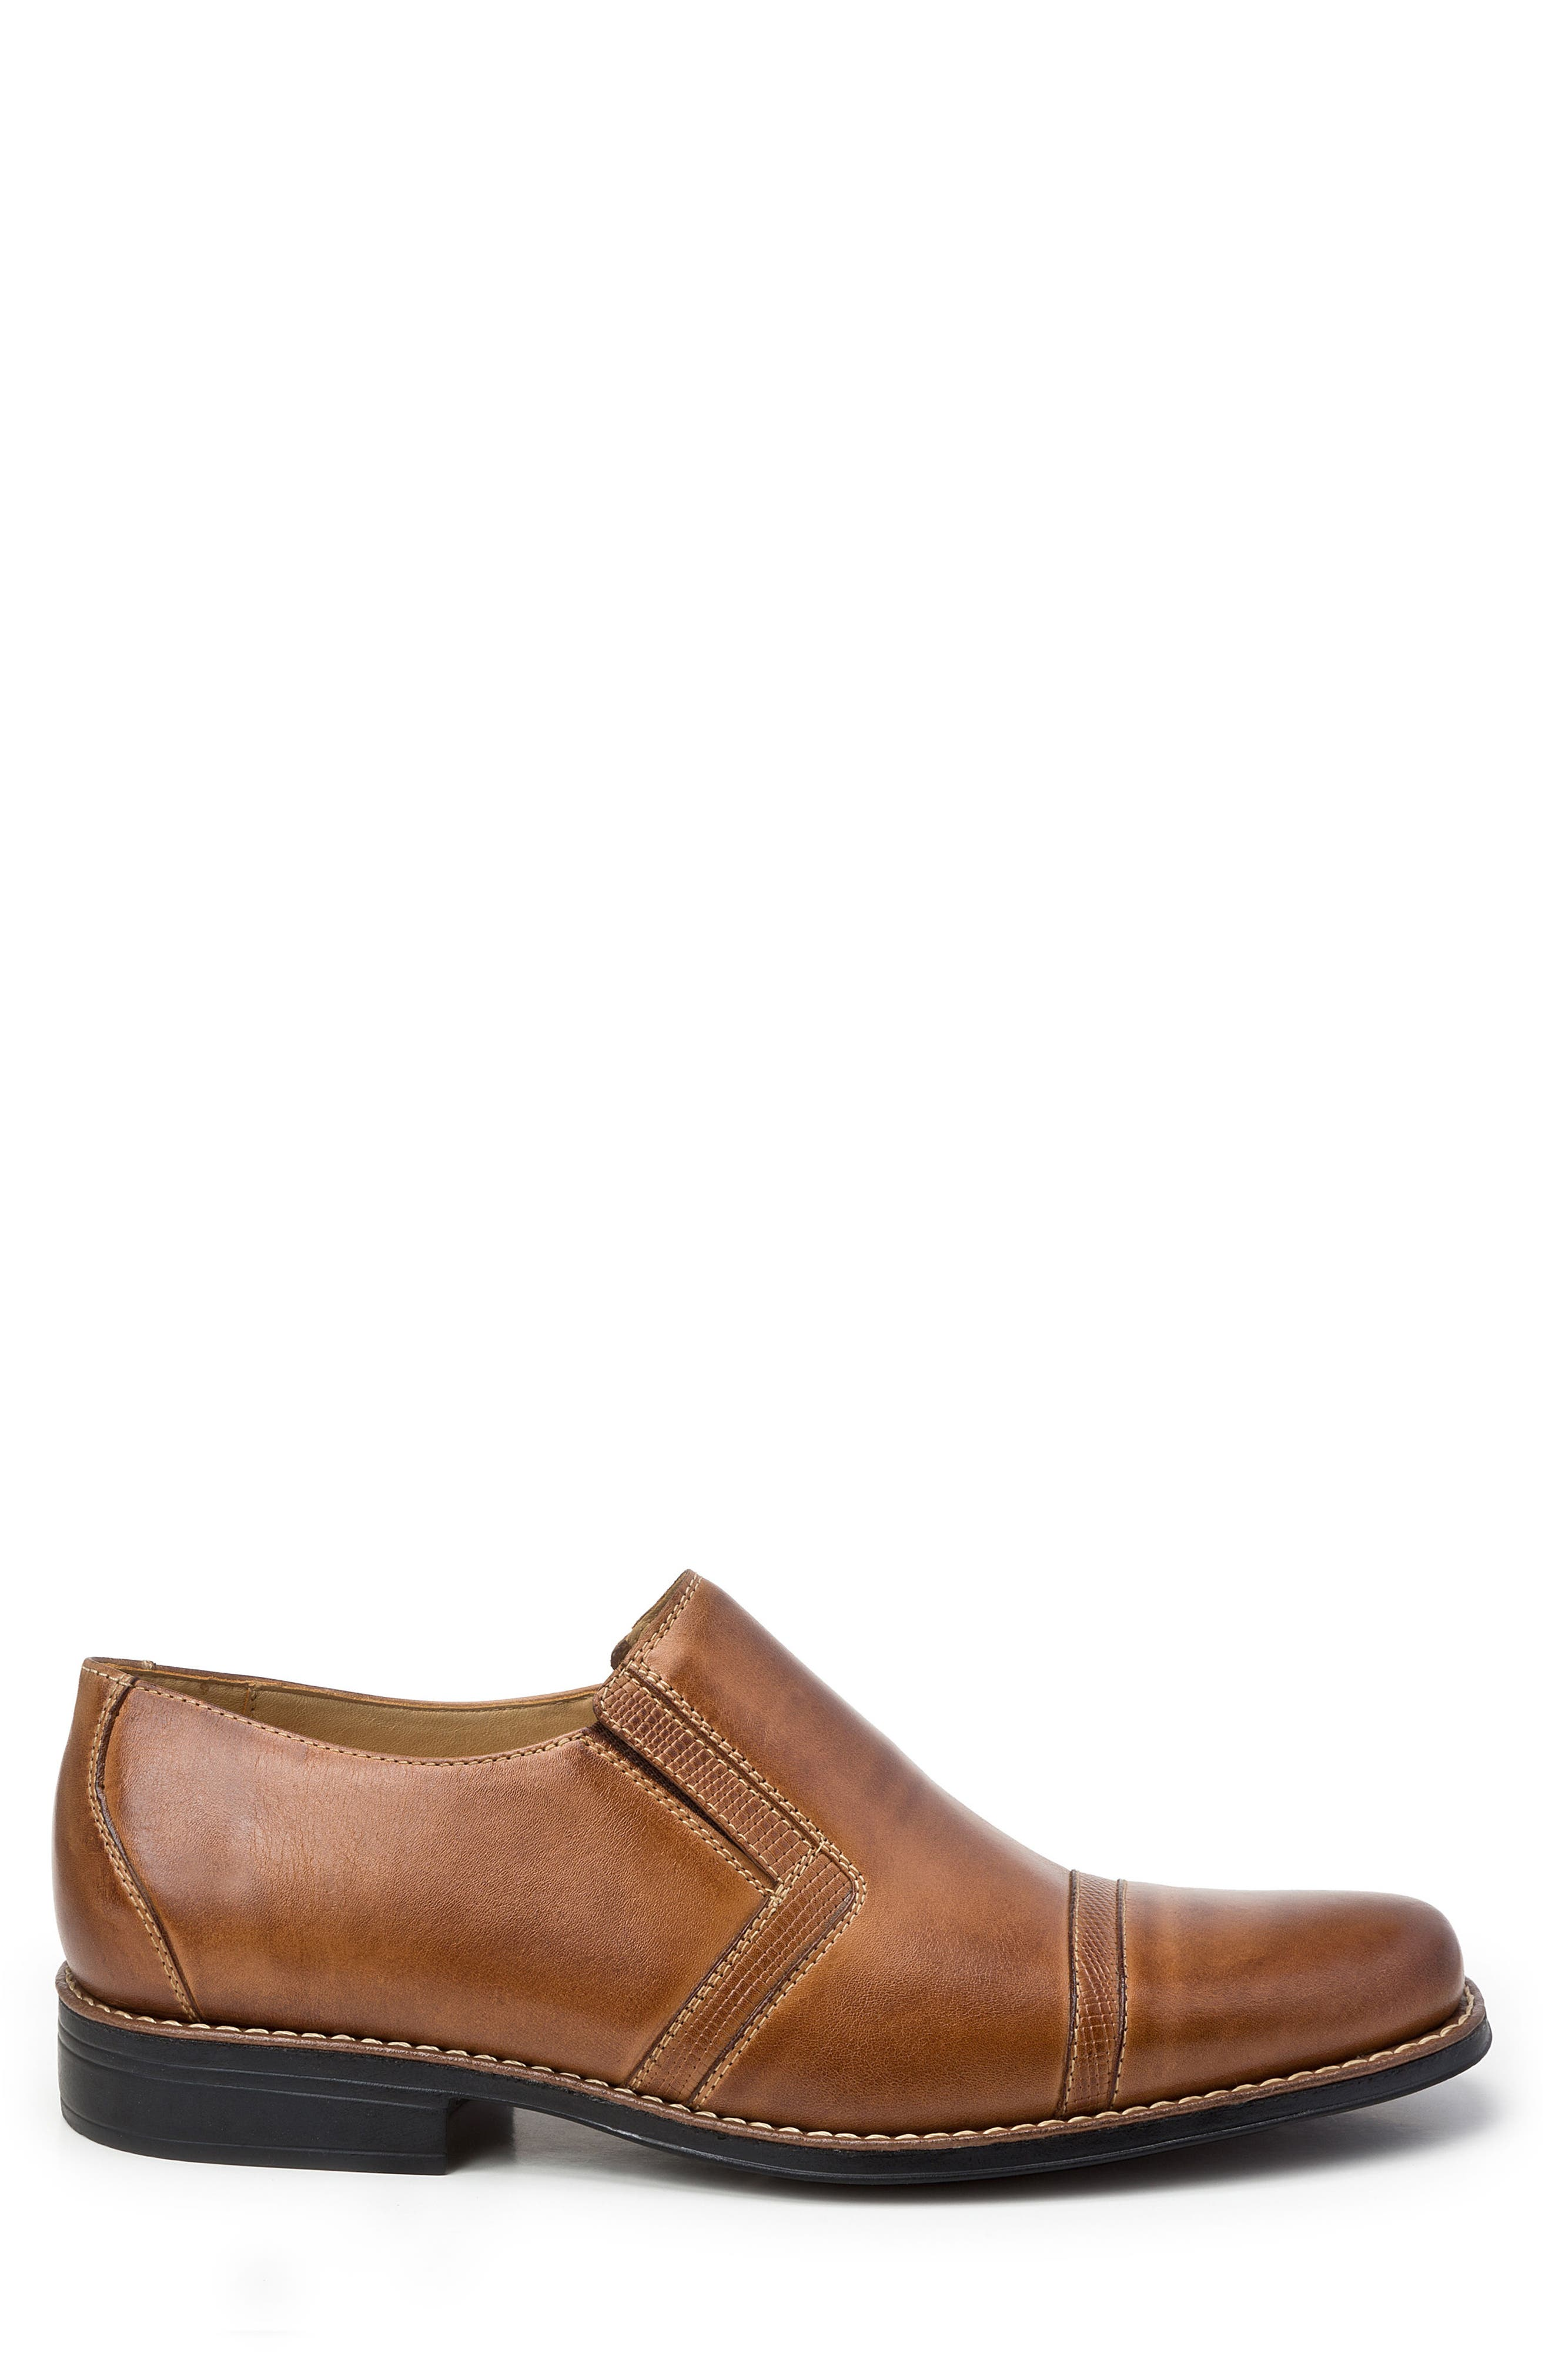 Sebastian Venetian Loafer,                             Alternate thumbnail 3, color,                             TAN LEATHER